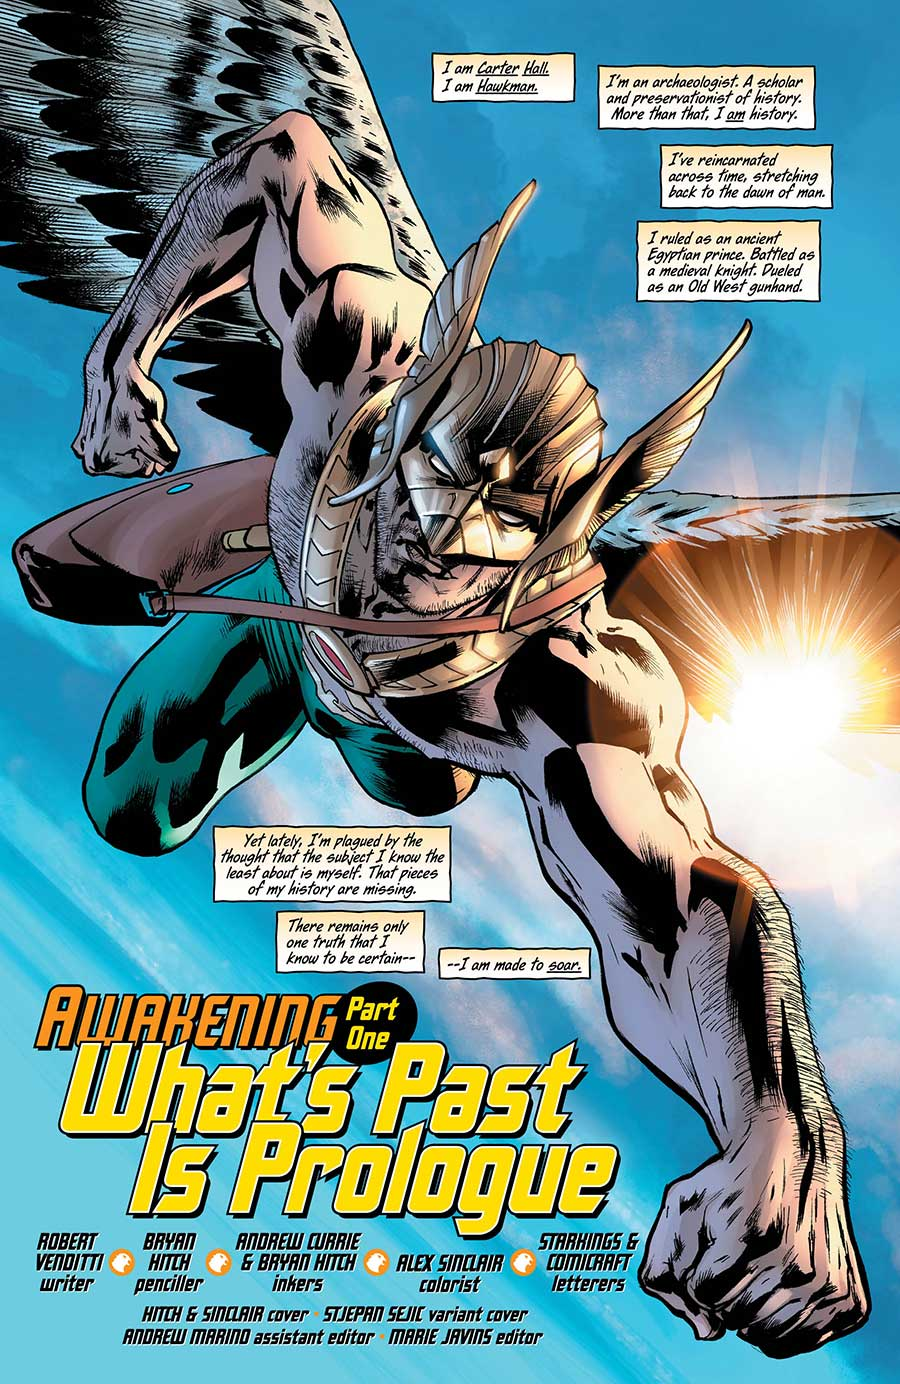 Hawkman 1 - DC Comics News